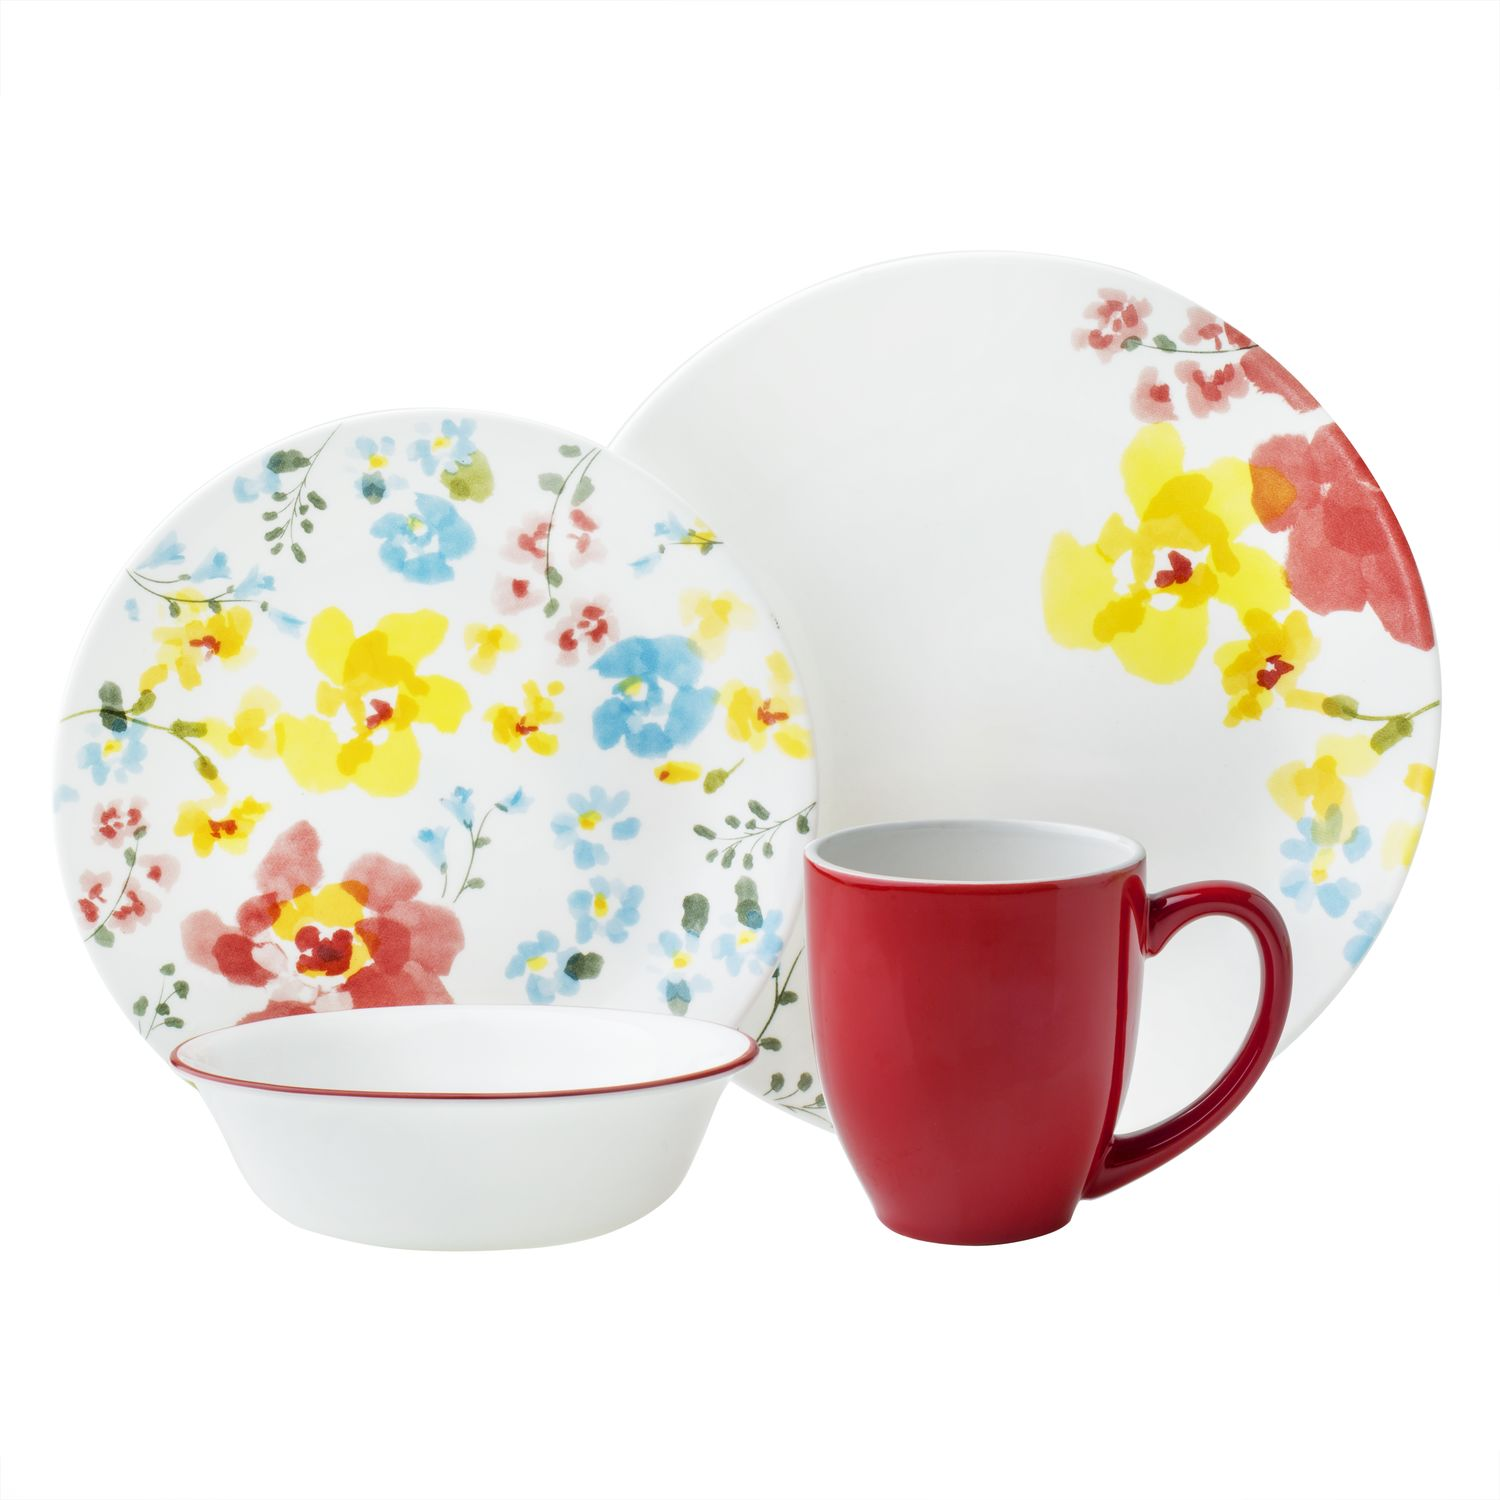 Vive Cheerful Garden 16-pc Dinnerware Set Review   Corelle Dinnerware. Vive Cheerful Garden 16 Pc Dinnerware Set Review Corelle Dinnerware  sc 1 st  Best Image Engine & Marvellous Corelle Berries And Leaves 16 Pc Dinnerware Set Gallery ...